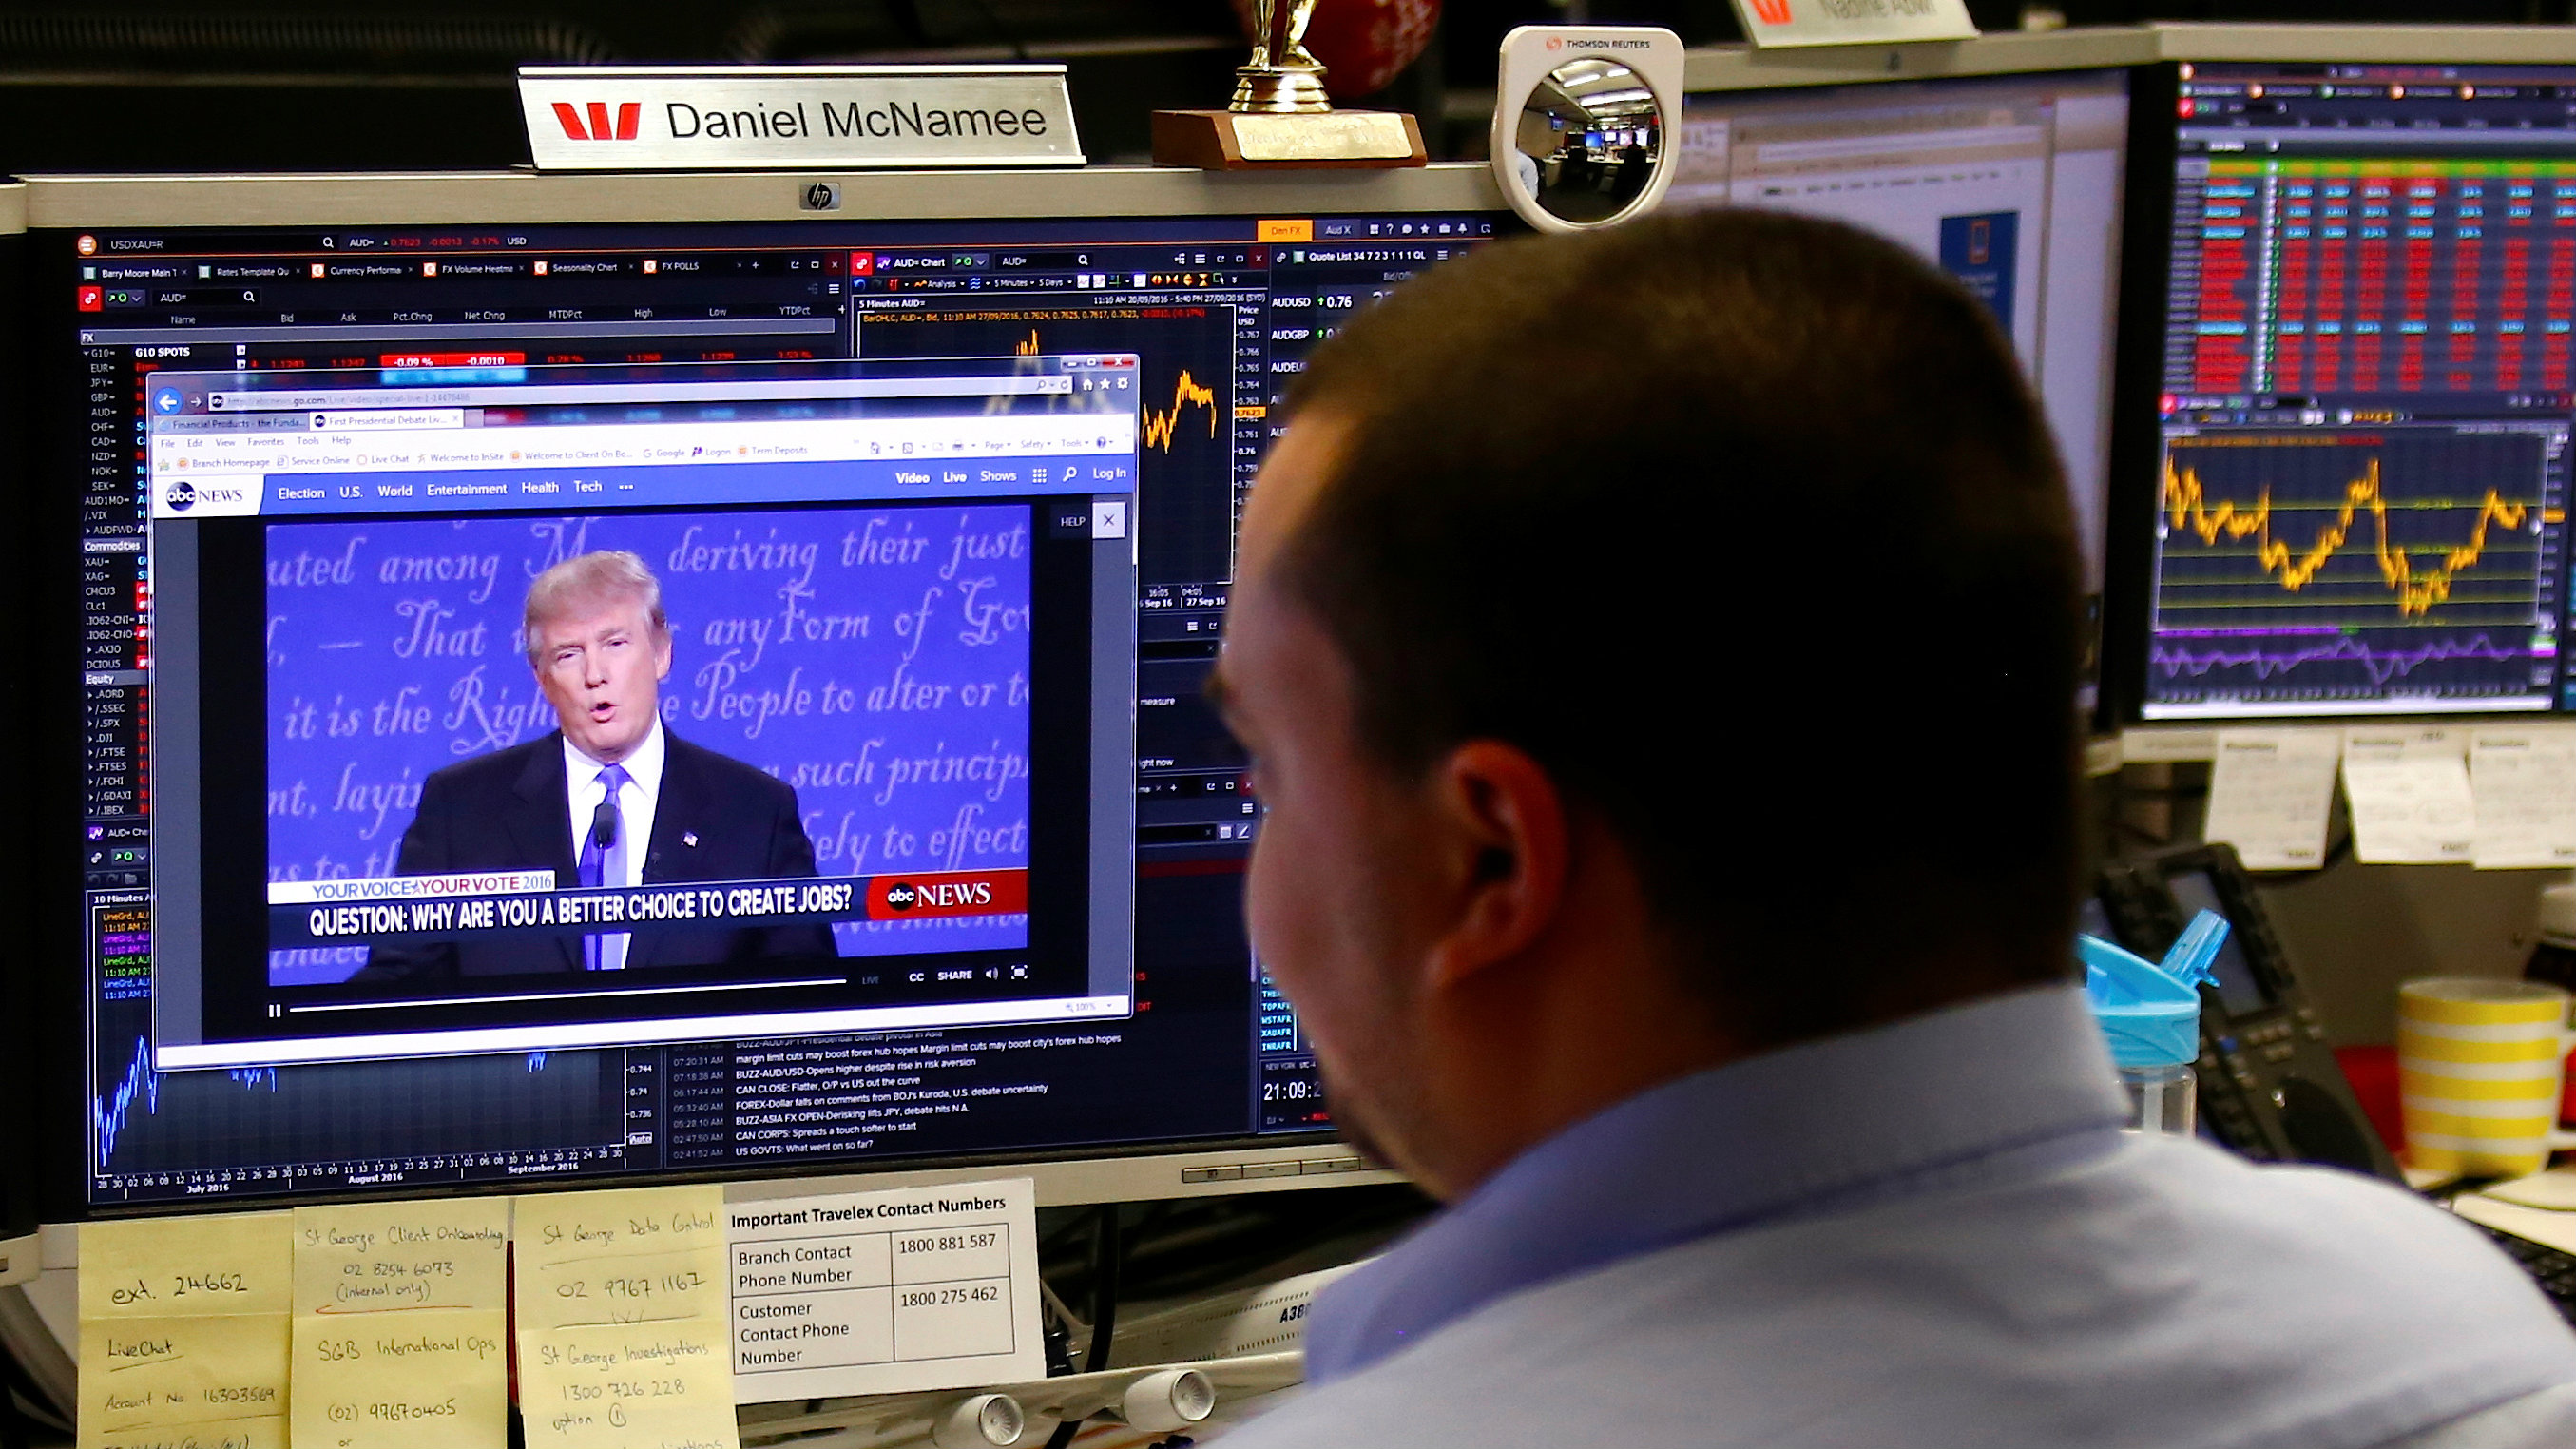 Trader Daniel McNamee talks on the phone on the dealing floor of Australia's Westpac Bank in Sydney, Australia, September 27, 2016, as Republican U.S. presidential nominee Donald Trump is displayed on his screen speaking during the first presidential debate with Democratic U.S. presidential nominee Hillary Clinton.